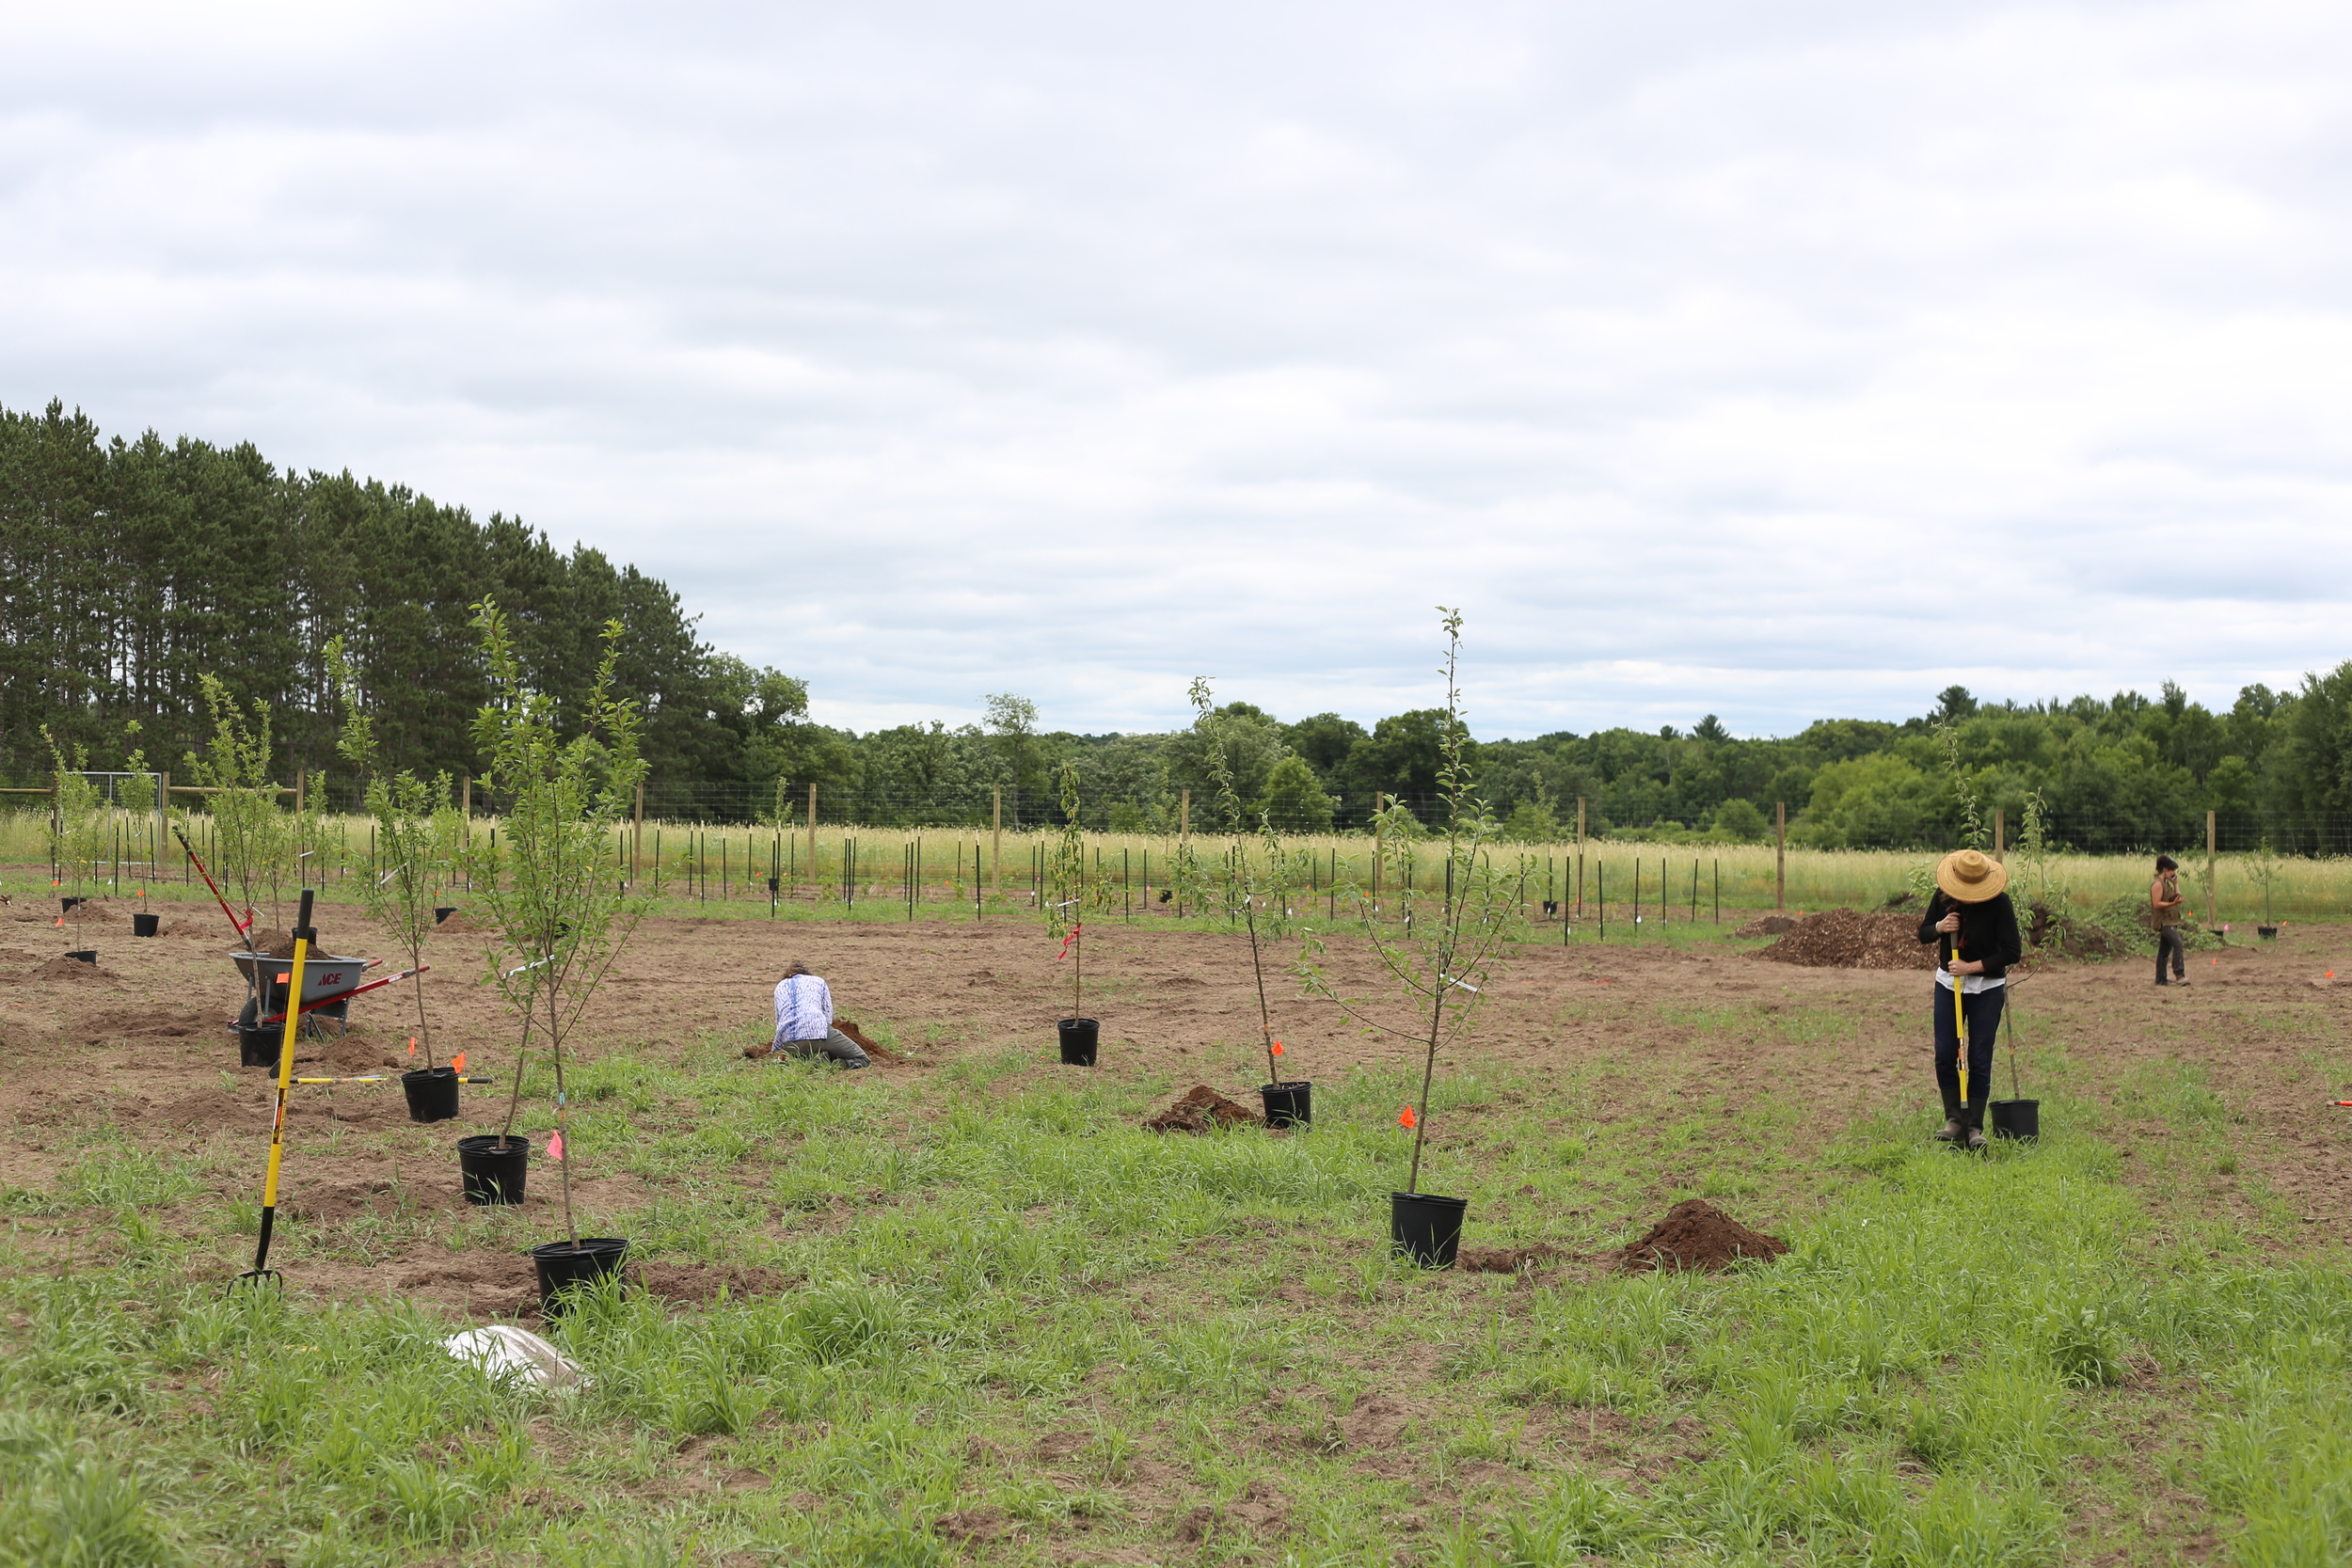 Nina,Sarah and Lindsay lend their skills to the effort as we plant a variety of apple, plum and cherry trees in the North Field. Within two days, we went from 0 to 50+ trees and bushes!